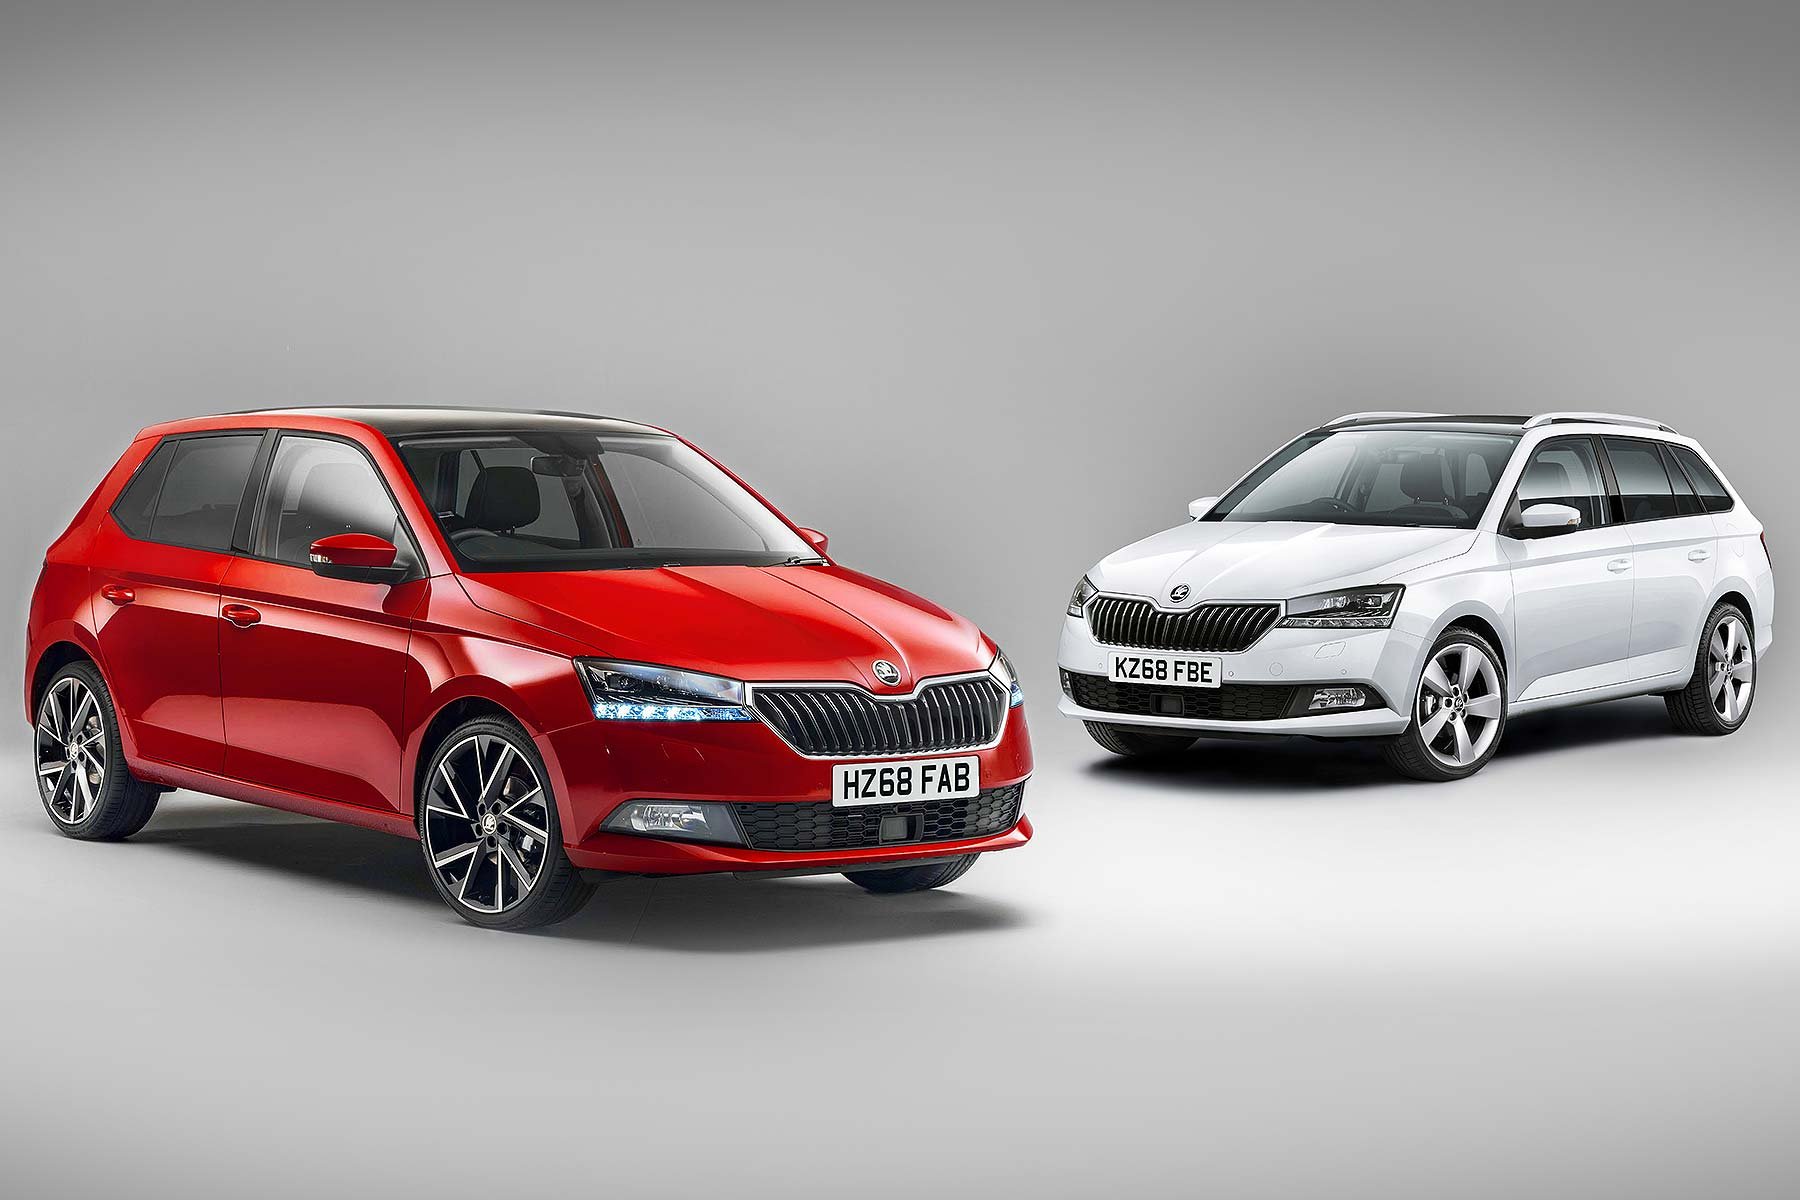 54 New 2019 Skoda Roomster Price and Review